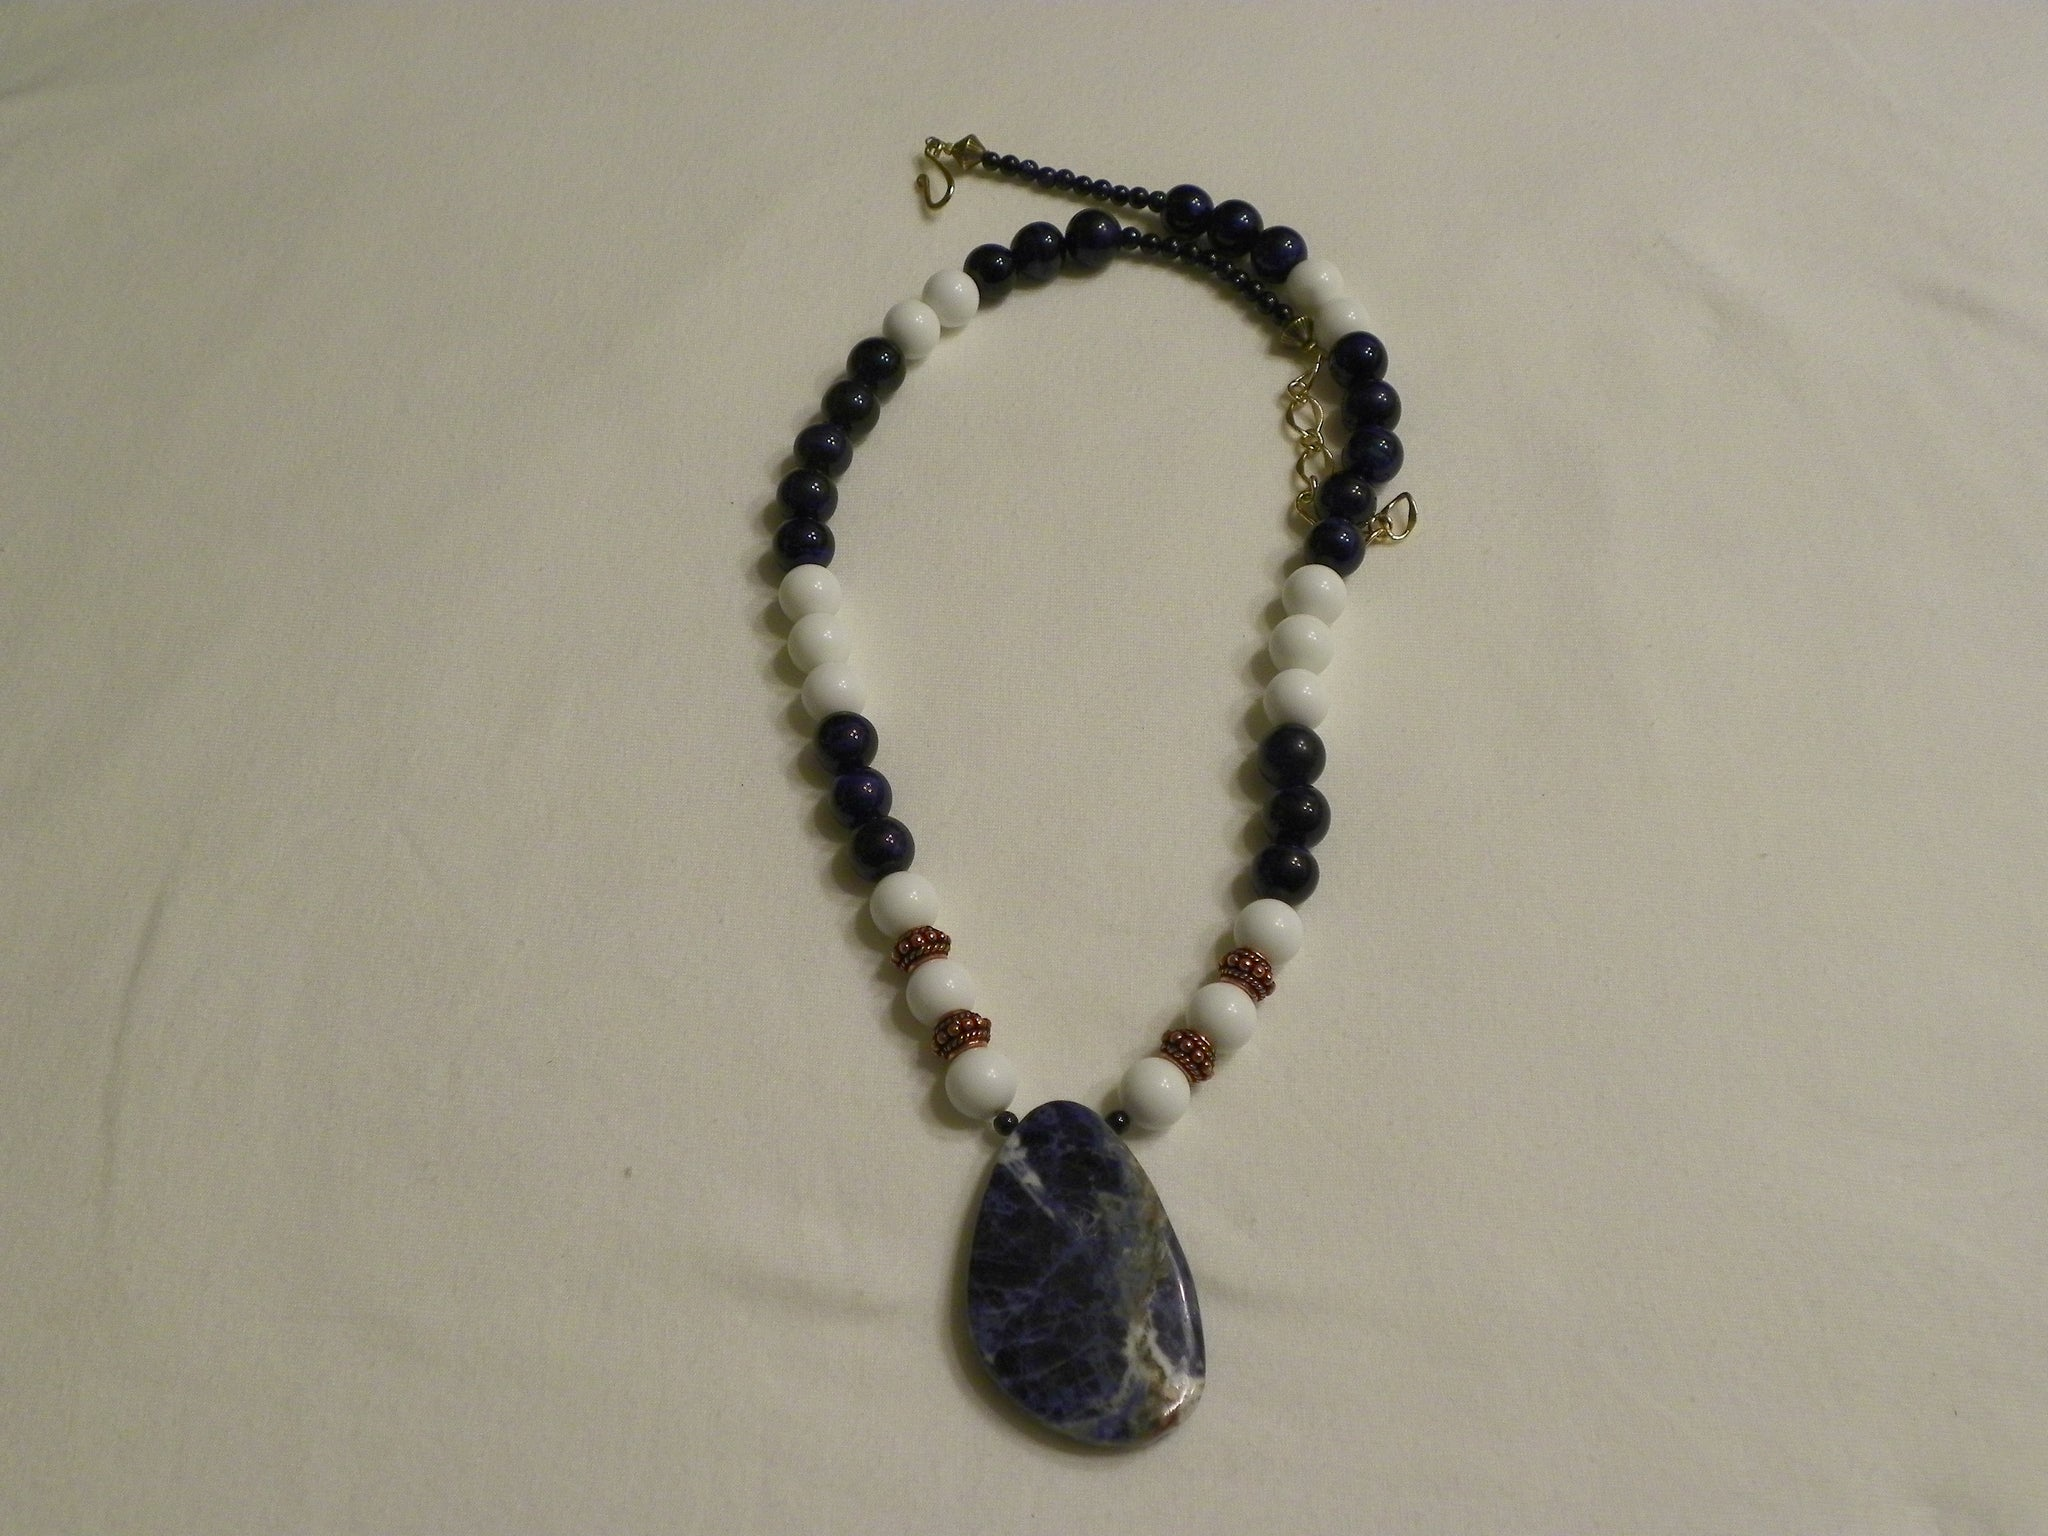 Lapis and White Onyx Beads & Sodalite Pendant Necklace